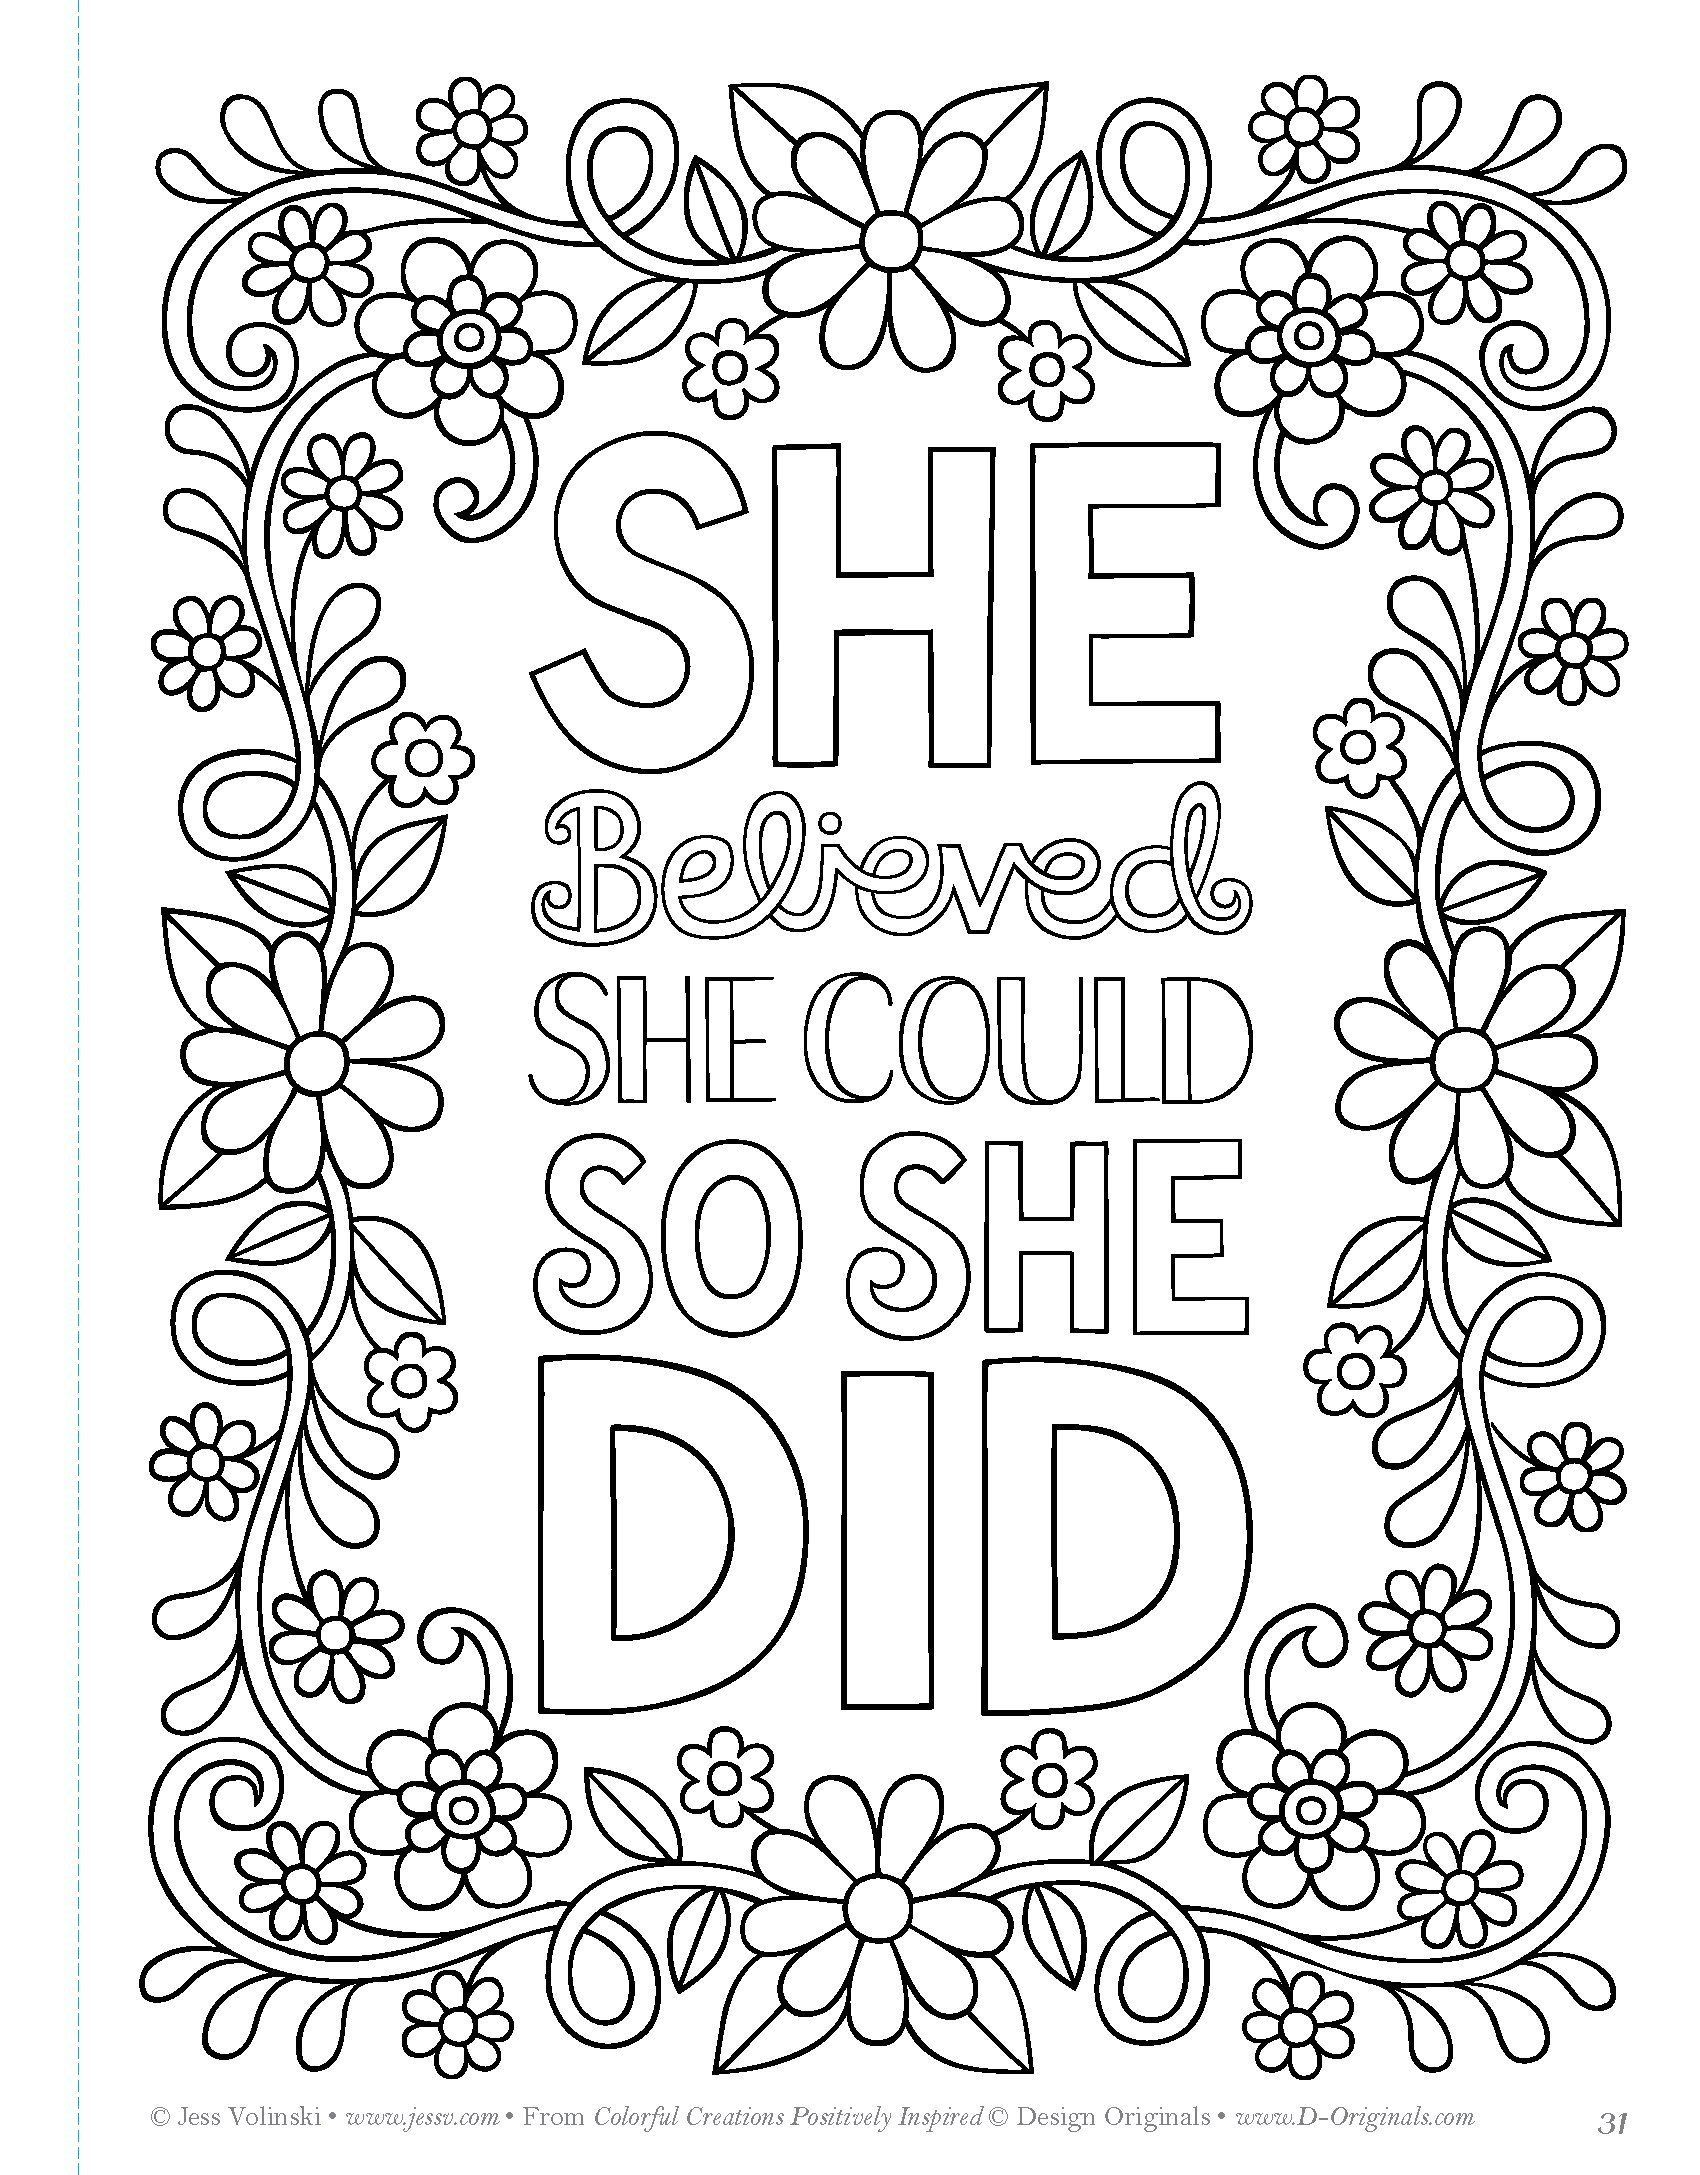 Colorful Creations Positively Inspired Coloring Quote Coloring Pages Coloring Pages Inspirational Free Coloring Pages